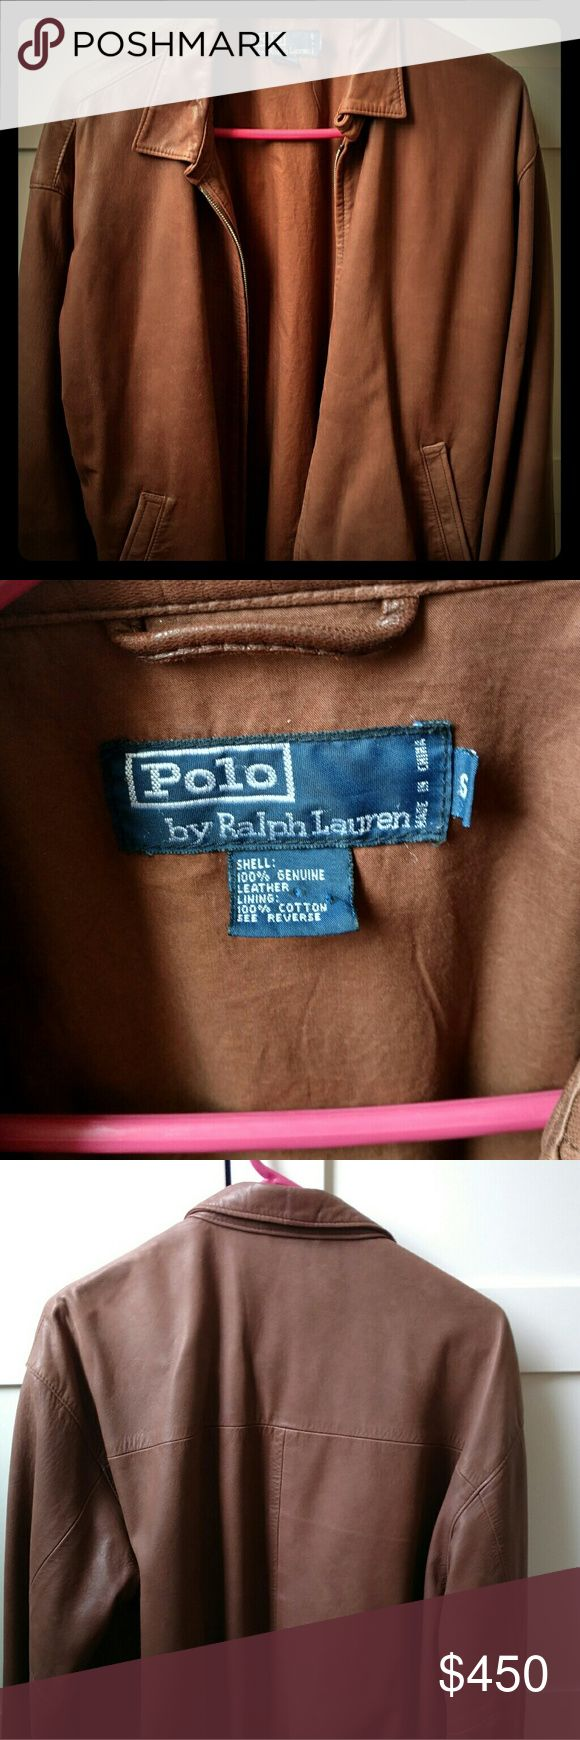 Super-soft Polo leather jacket This brown leather (lambskin) jacket by Polo by Ralph Lauren is amazingly soft.  It is lined with cotton poplin.  Men's small.  Great vintage condition Polo By Ralph Lauren Jackets & Coats Bomber & Varsity